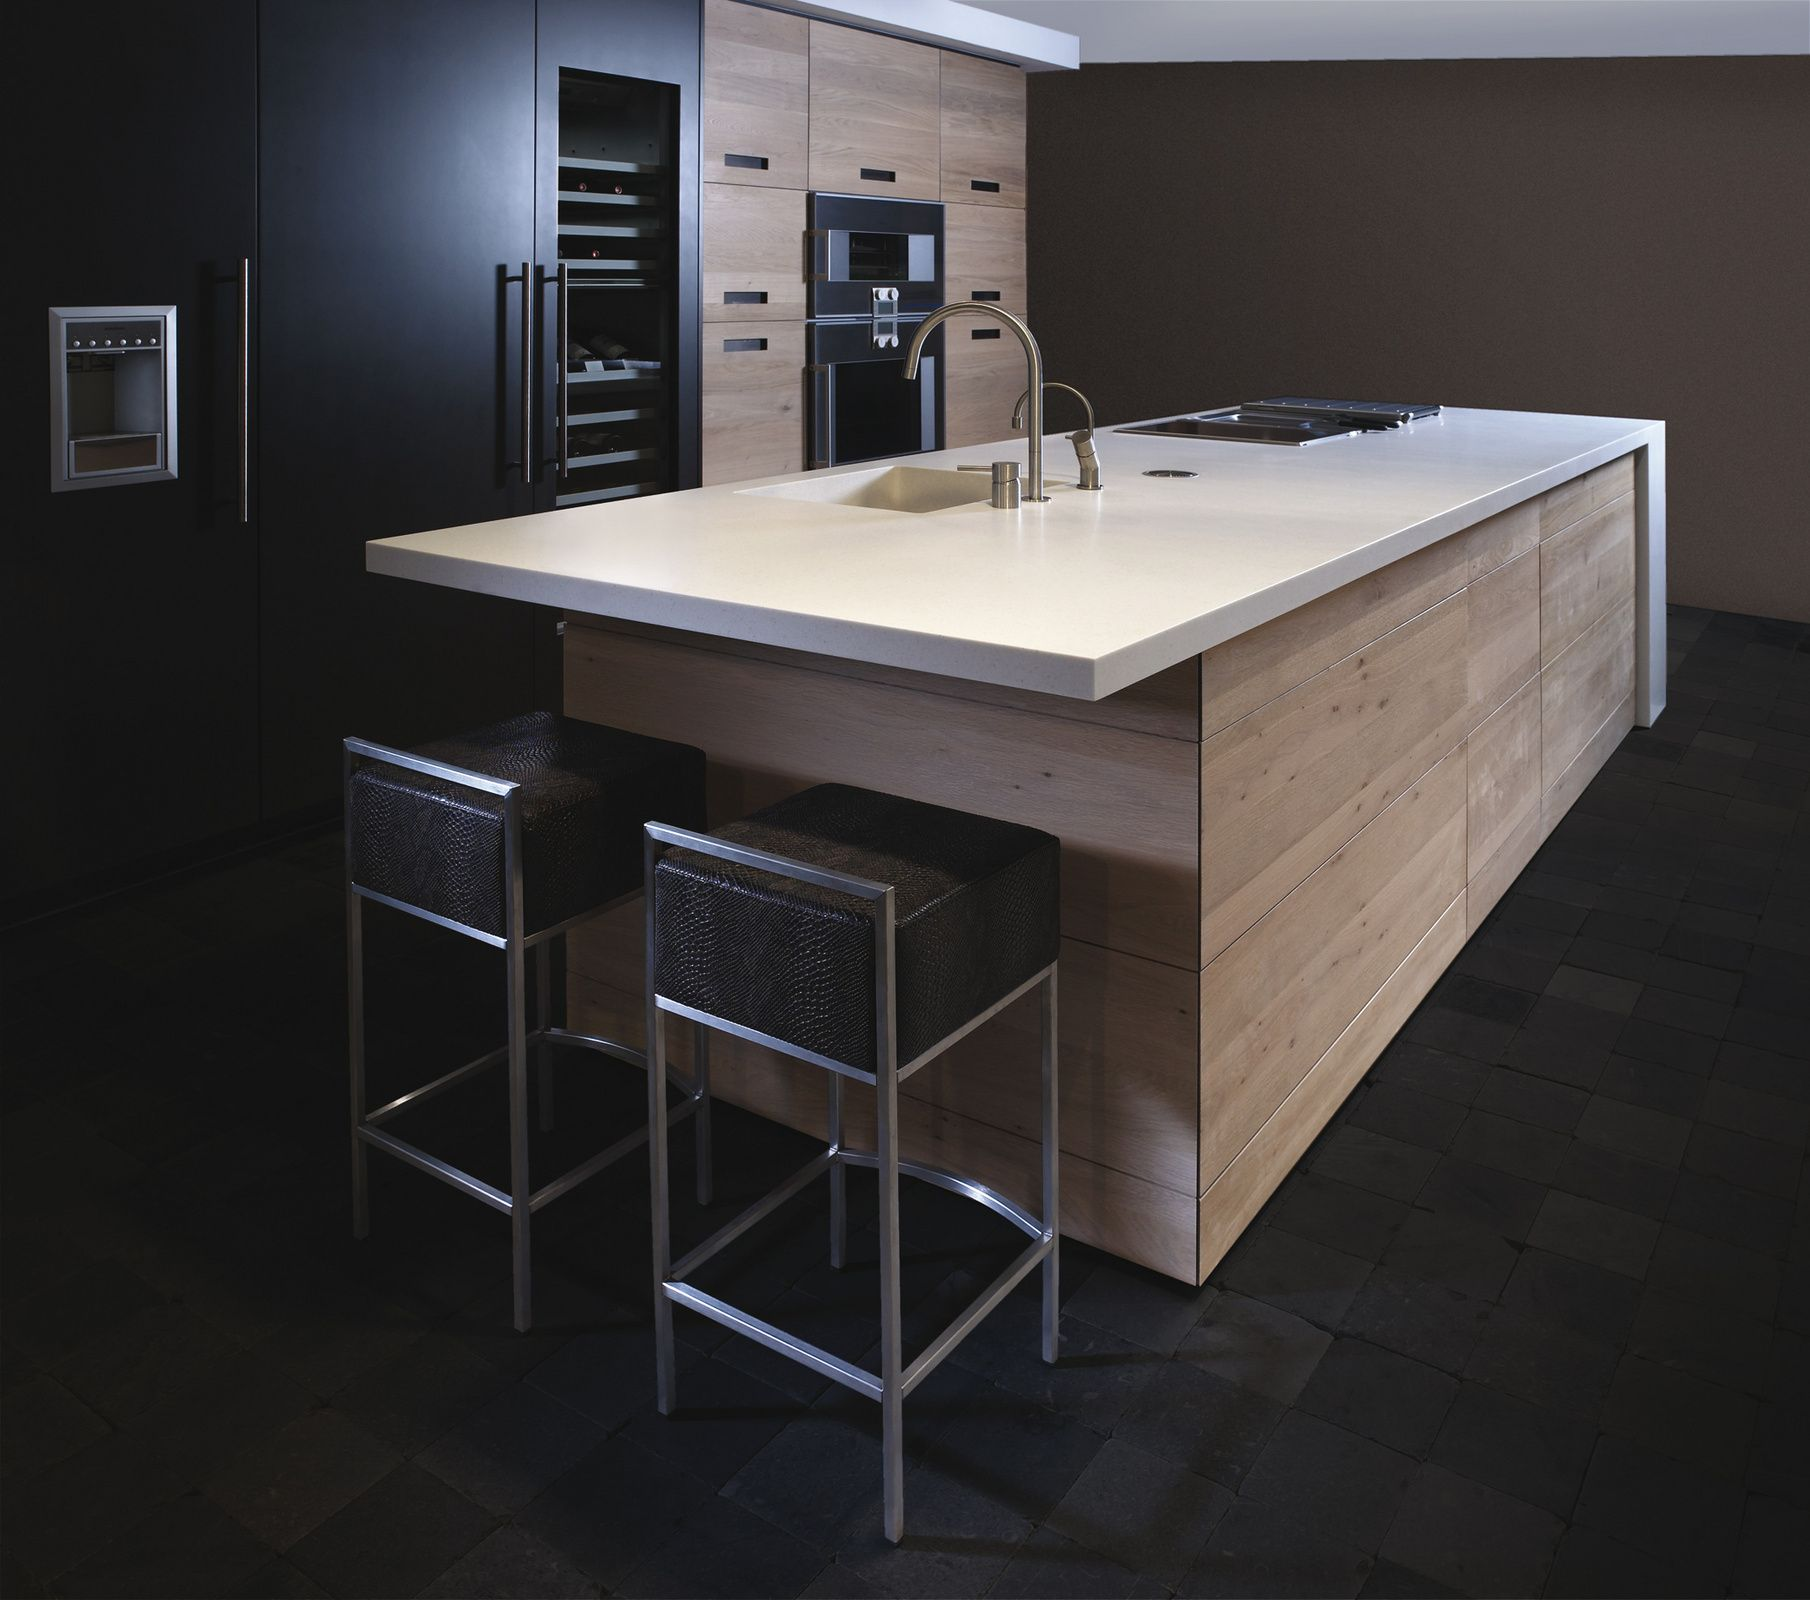 Dream Kitchens Nl: Culimaat - High End Kitchens